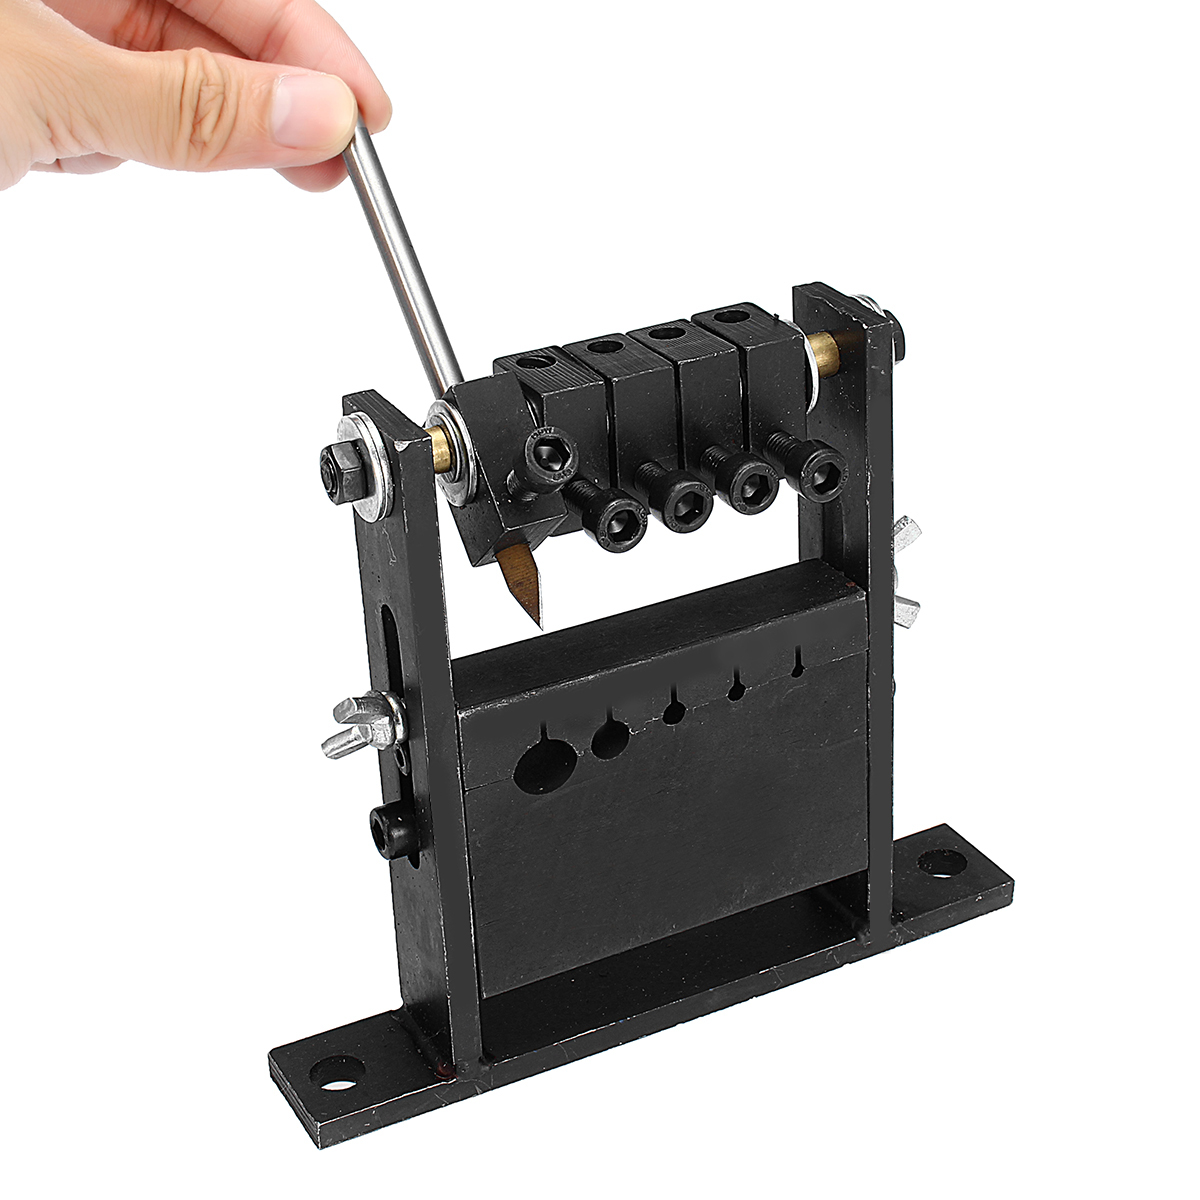 5 Size Holes Black Manual Cable Wire Strippers Machine for 1-30mm Diameter Wires